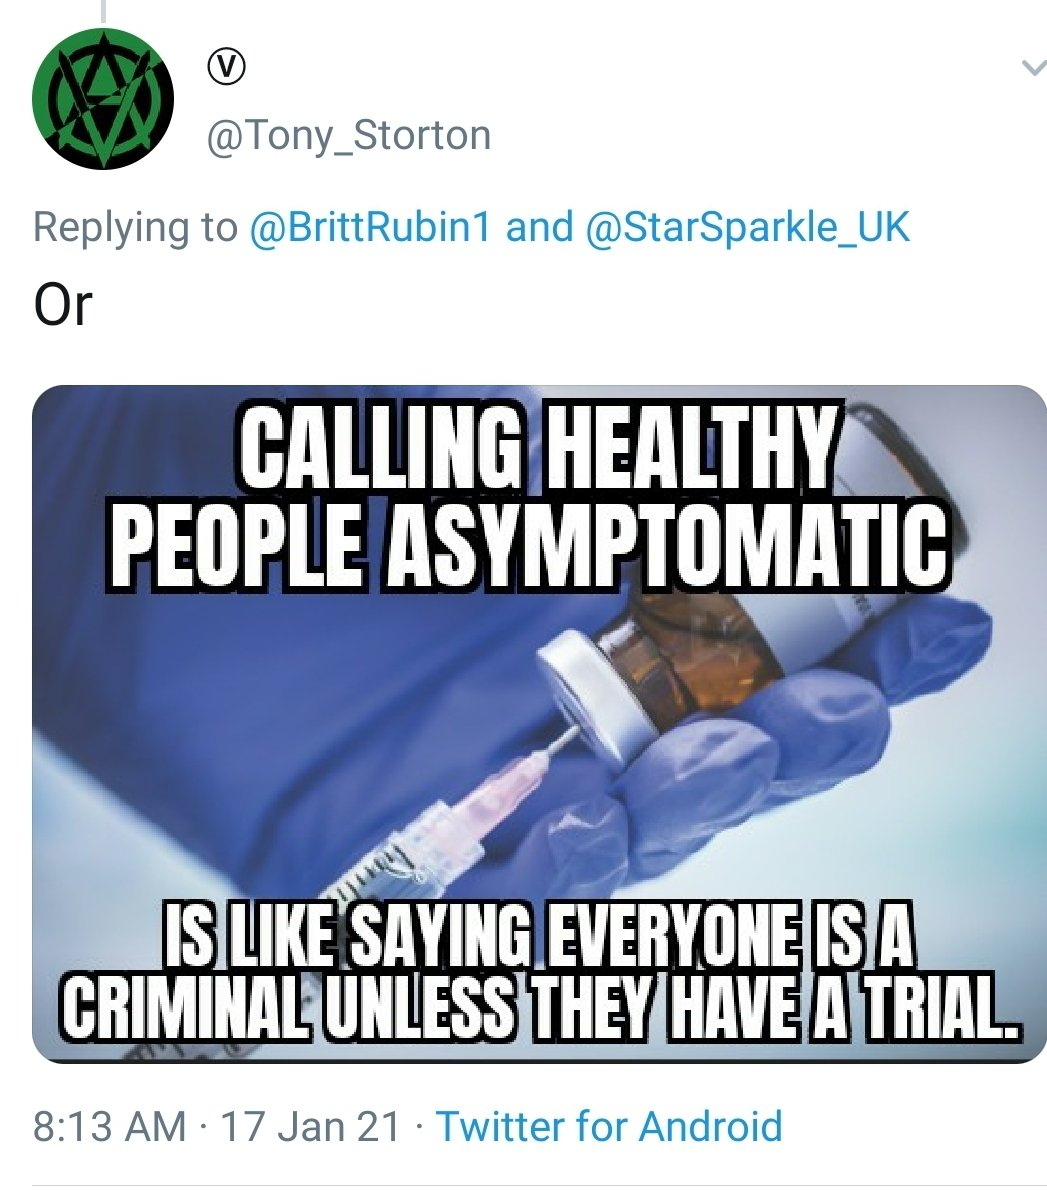 I'm being told by the tweet author that this makes perfect sense, I'm just not bright enough to get the point. I really believe that it's just a stupid anti-vax meme that's Not Even Wrong, but could I possibly be missing something?  #COVID19 #VaccinesWork